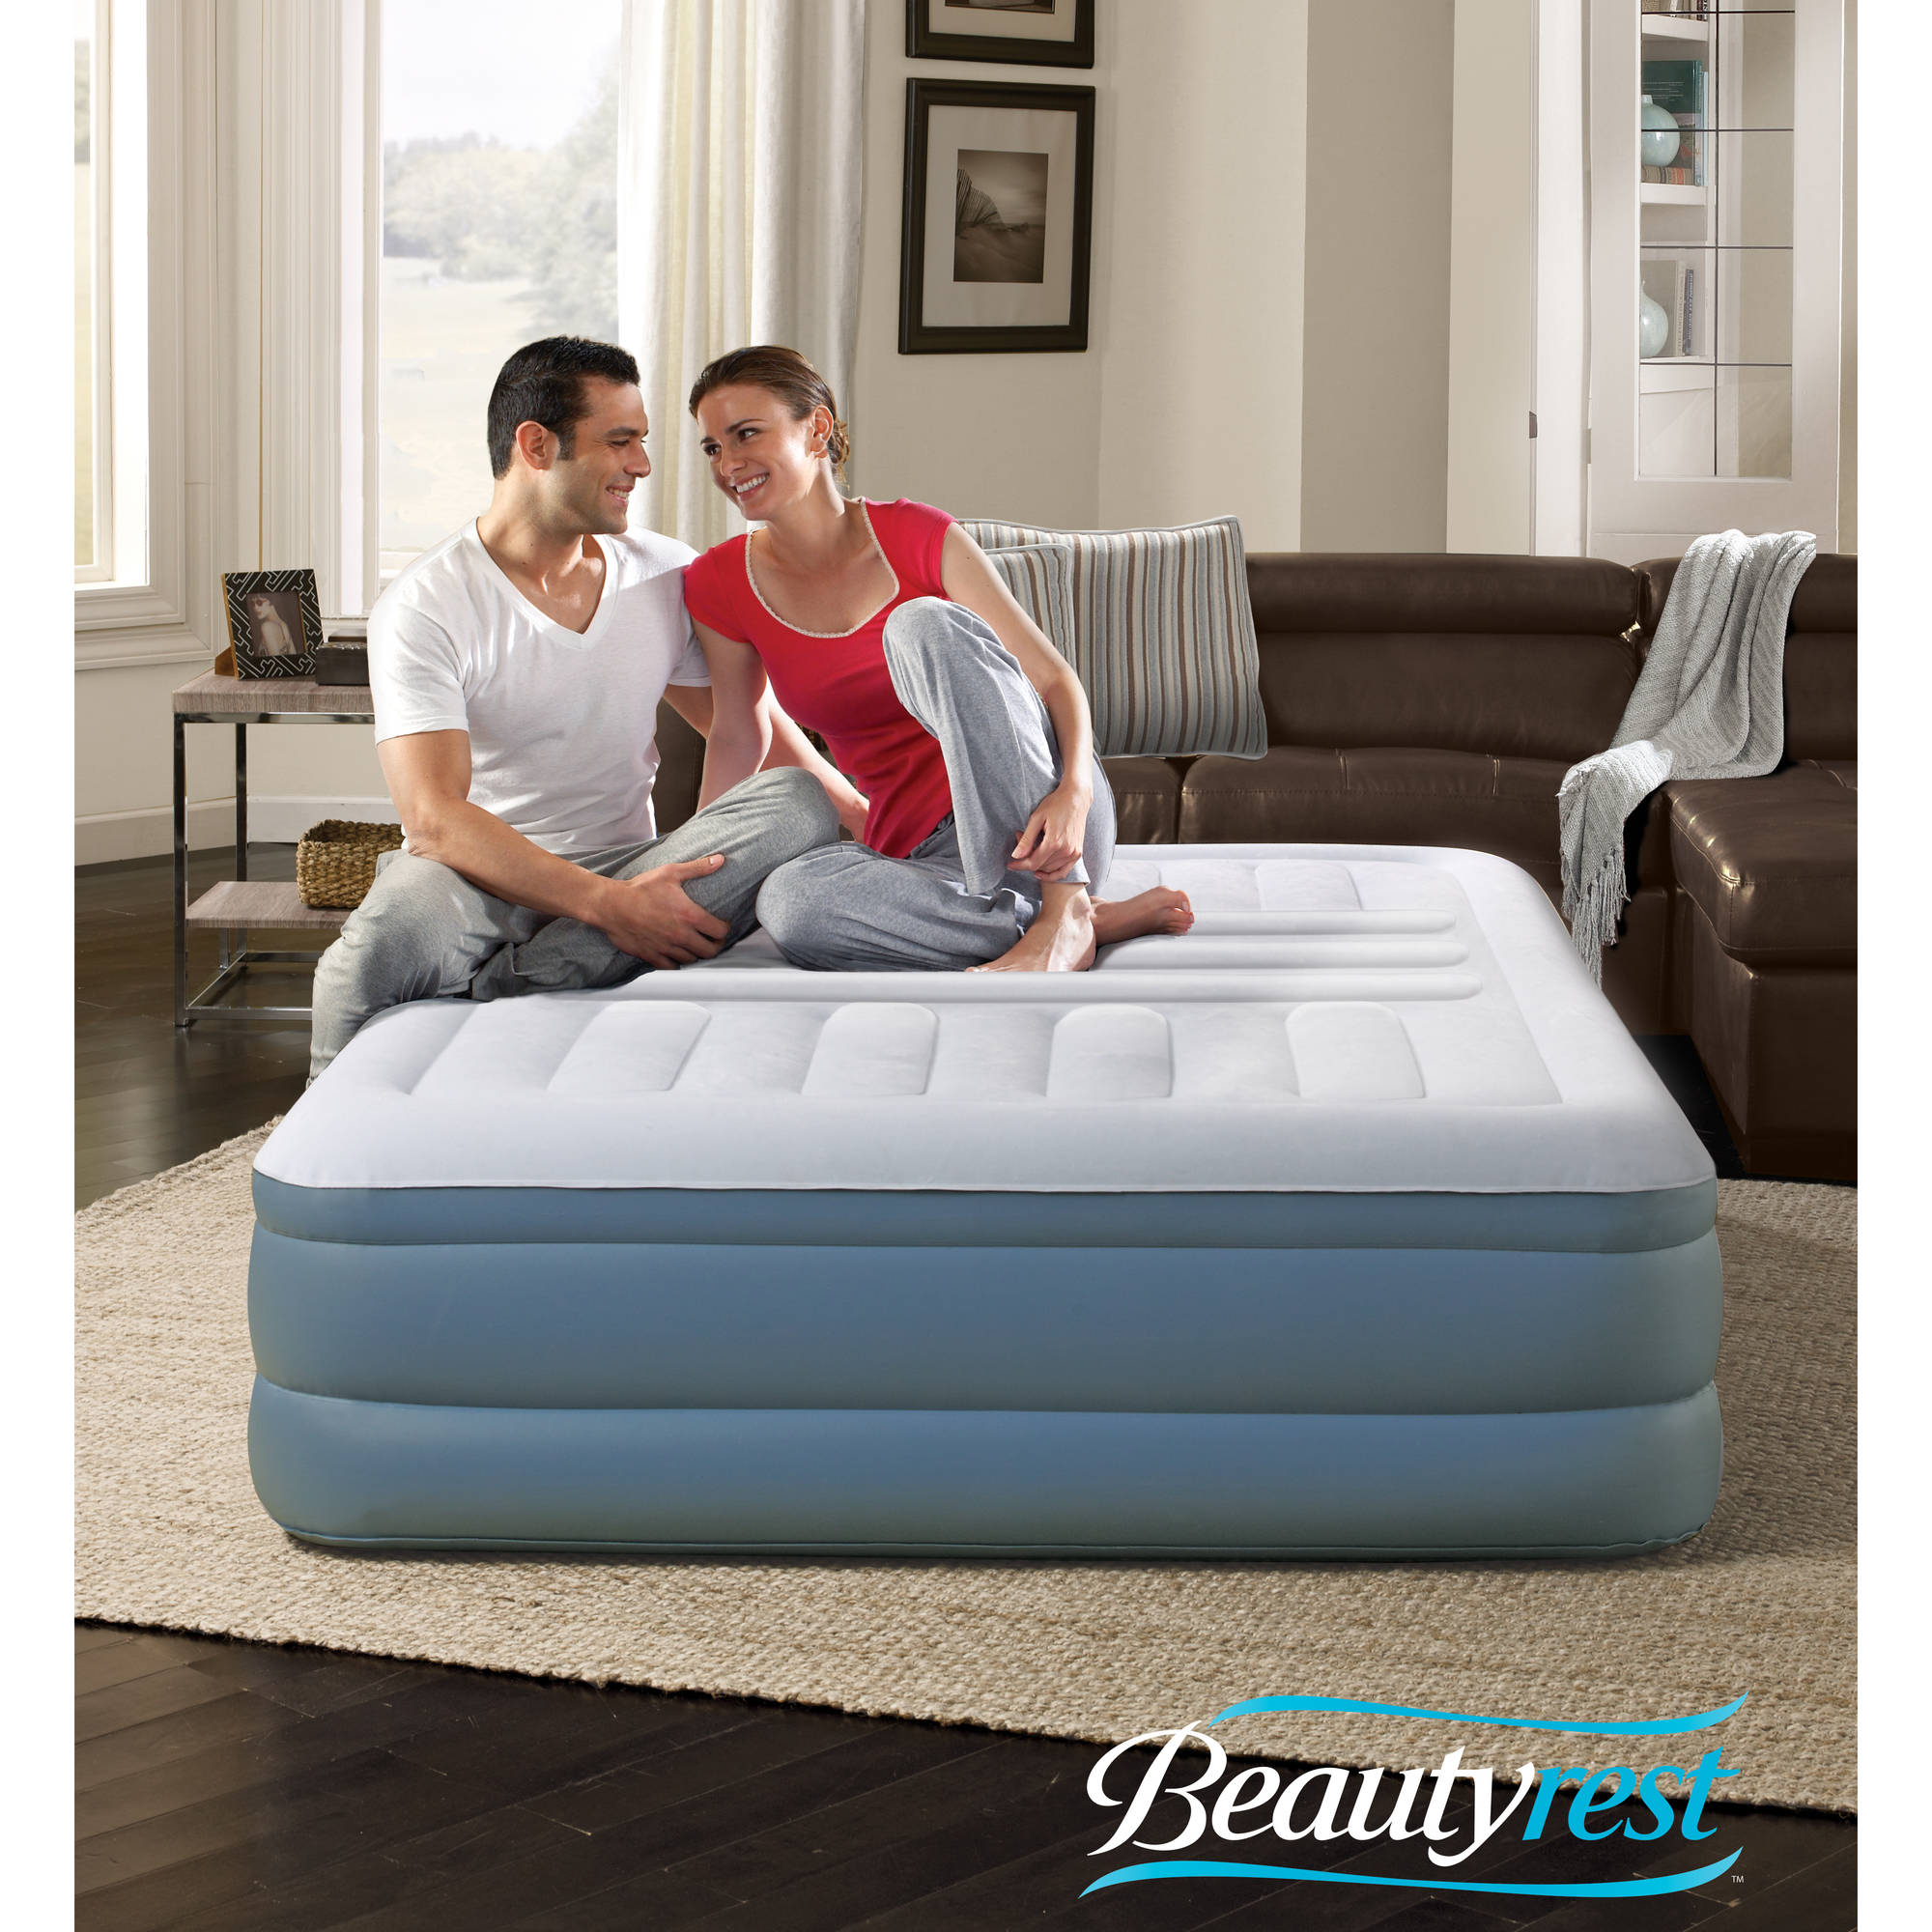 Simmons Beautyrest Lumbar Lux Queen Raised Air Bed Mattress with